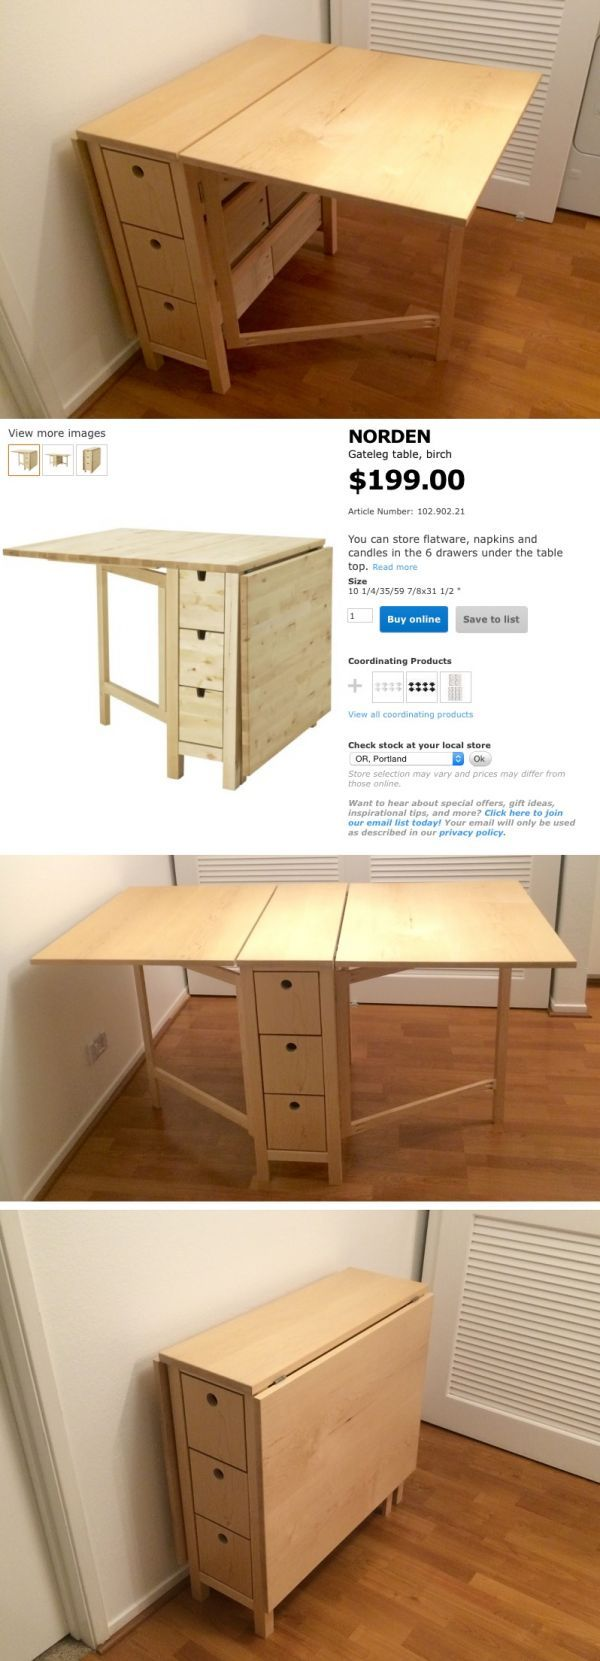 sewing cutting tables kitchen cutting table Wife saw an Ikea table liked but there s no Ikea here I said